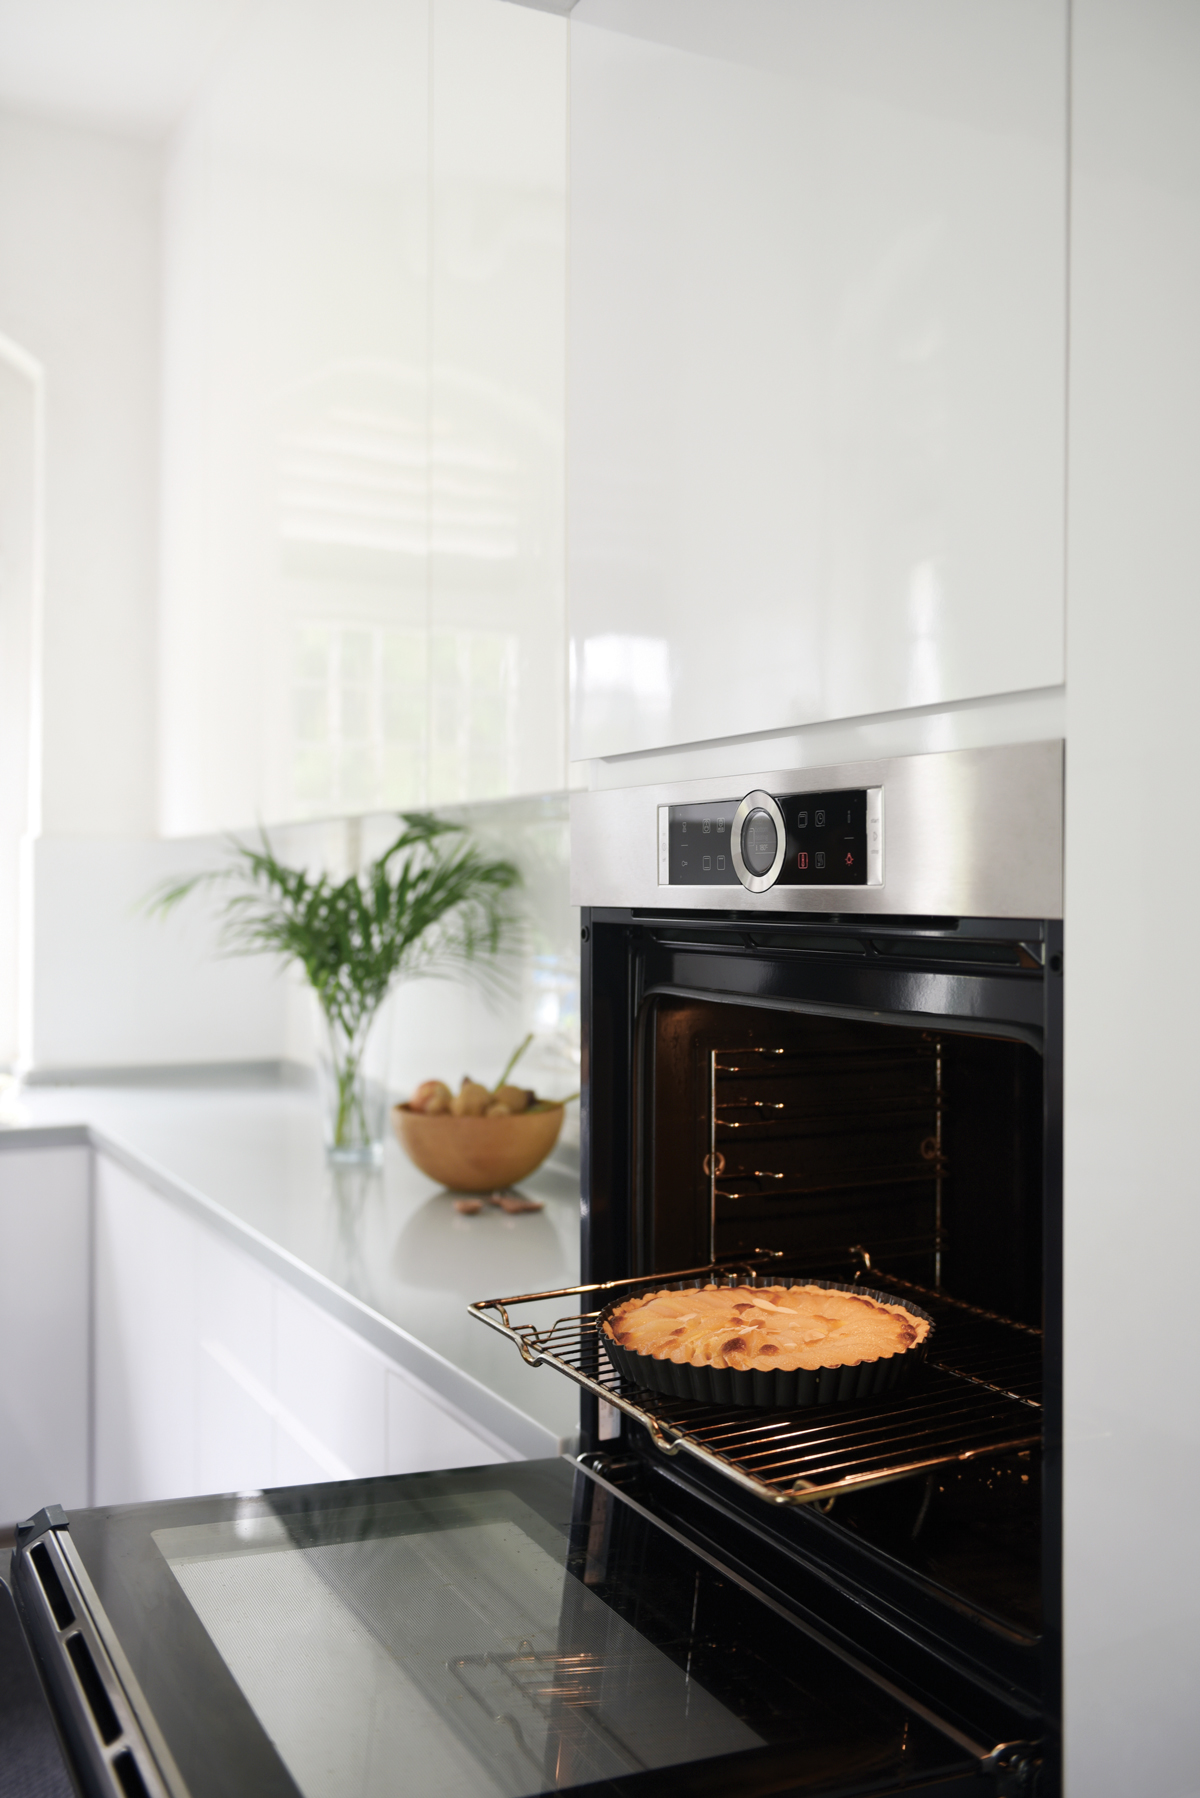 baking with series 8 ovens. Black Bedroom Furniture Sets. Home Design Ideas